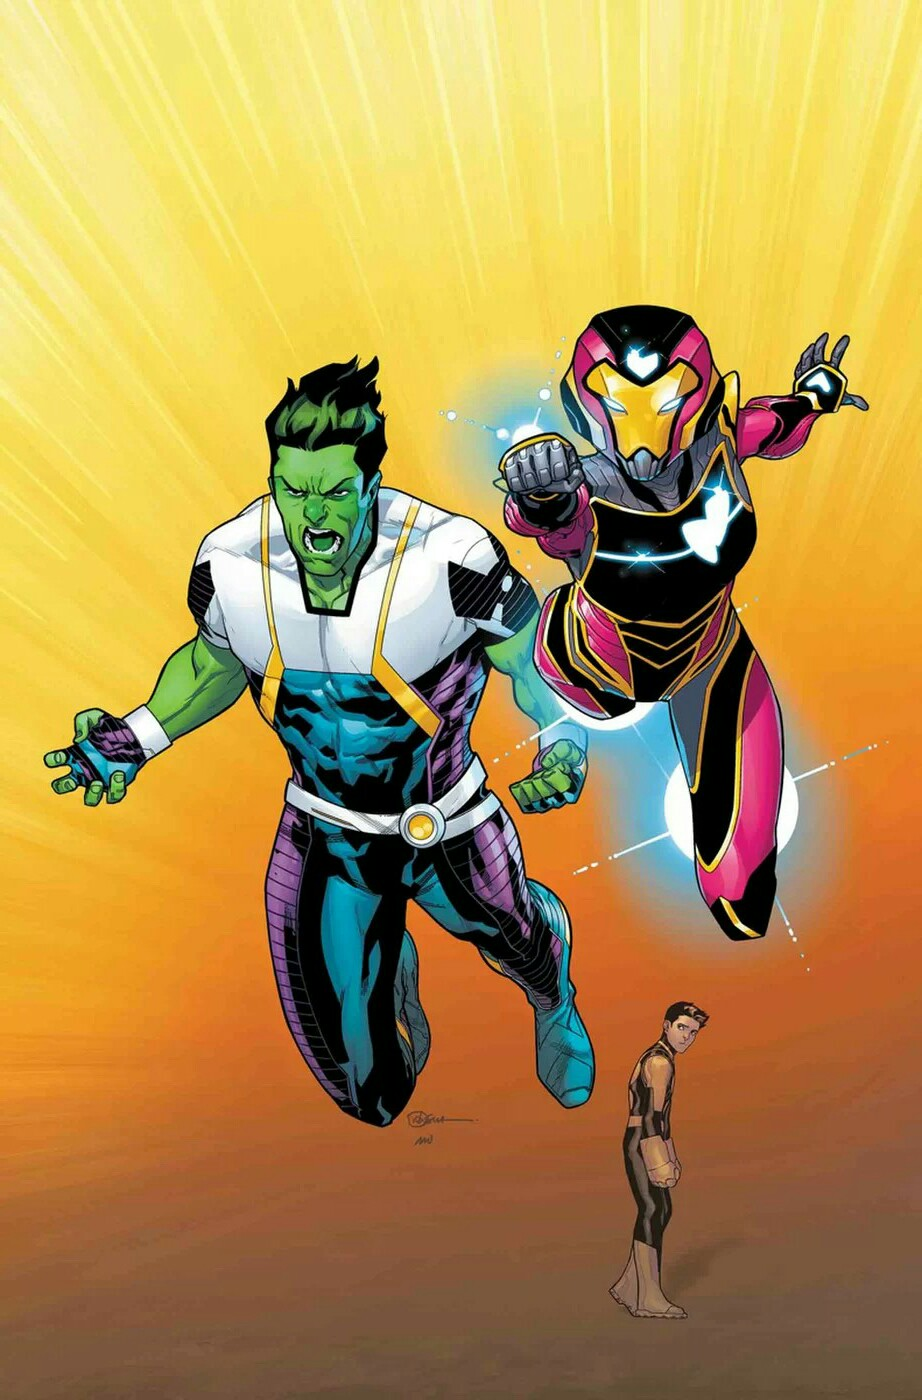 Champions Vol 2 22 Textless.jpg